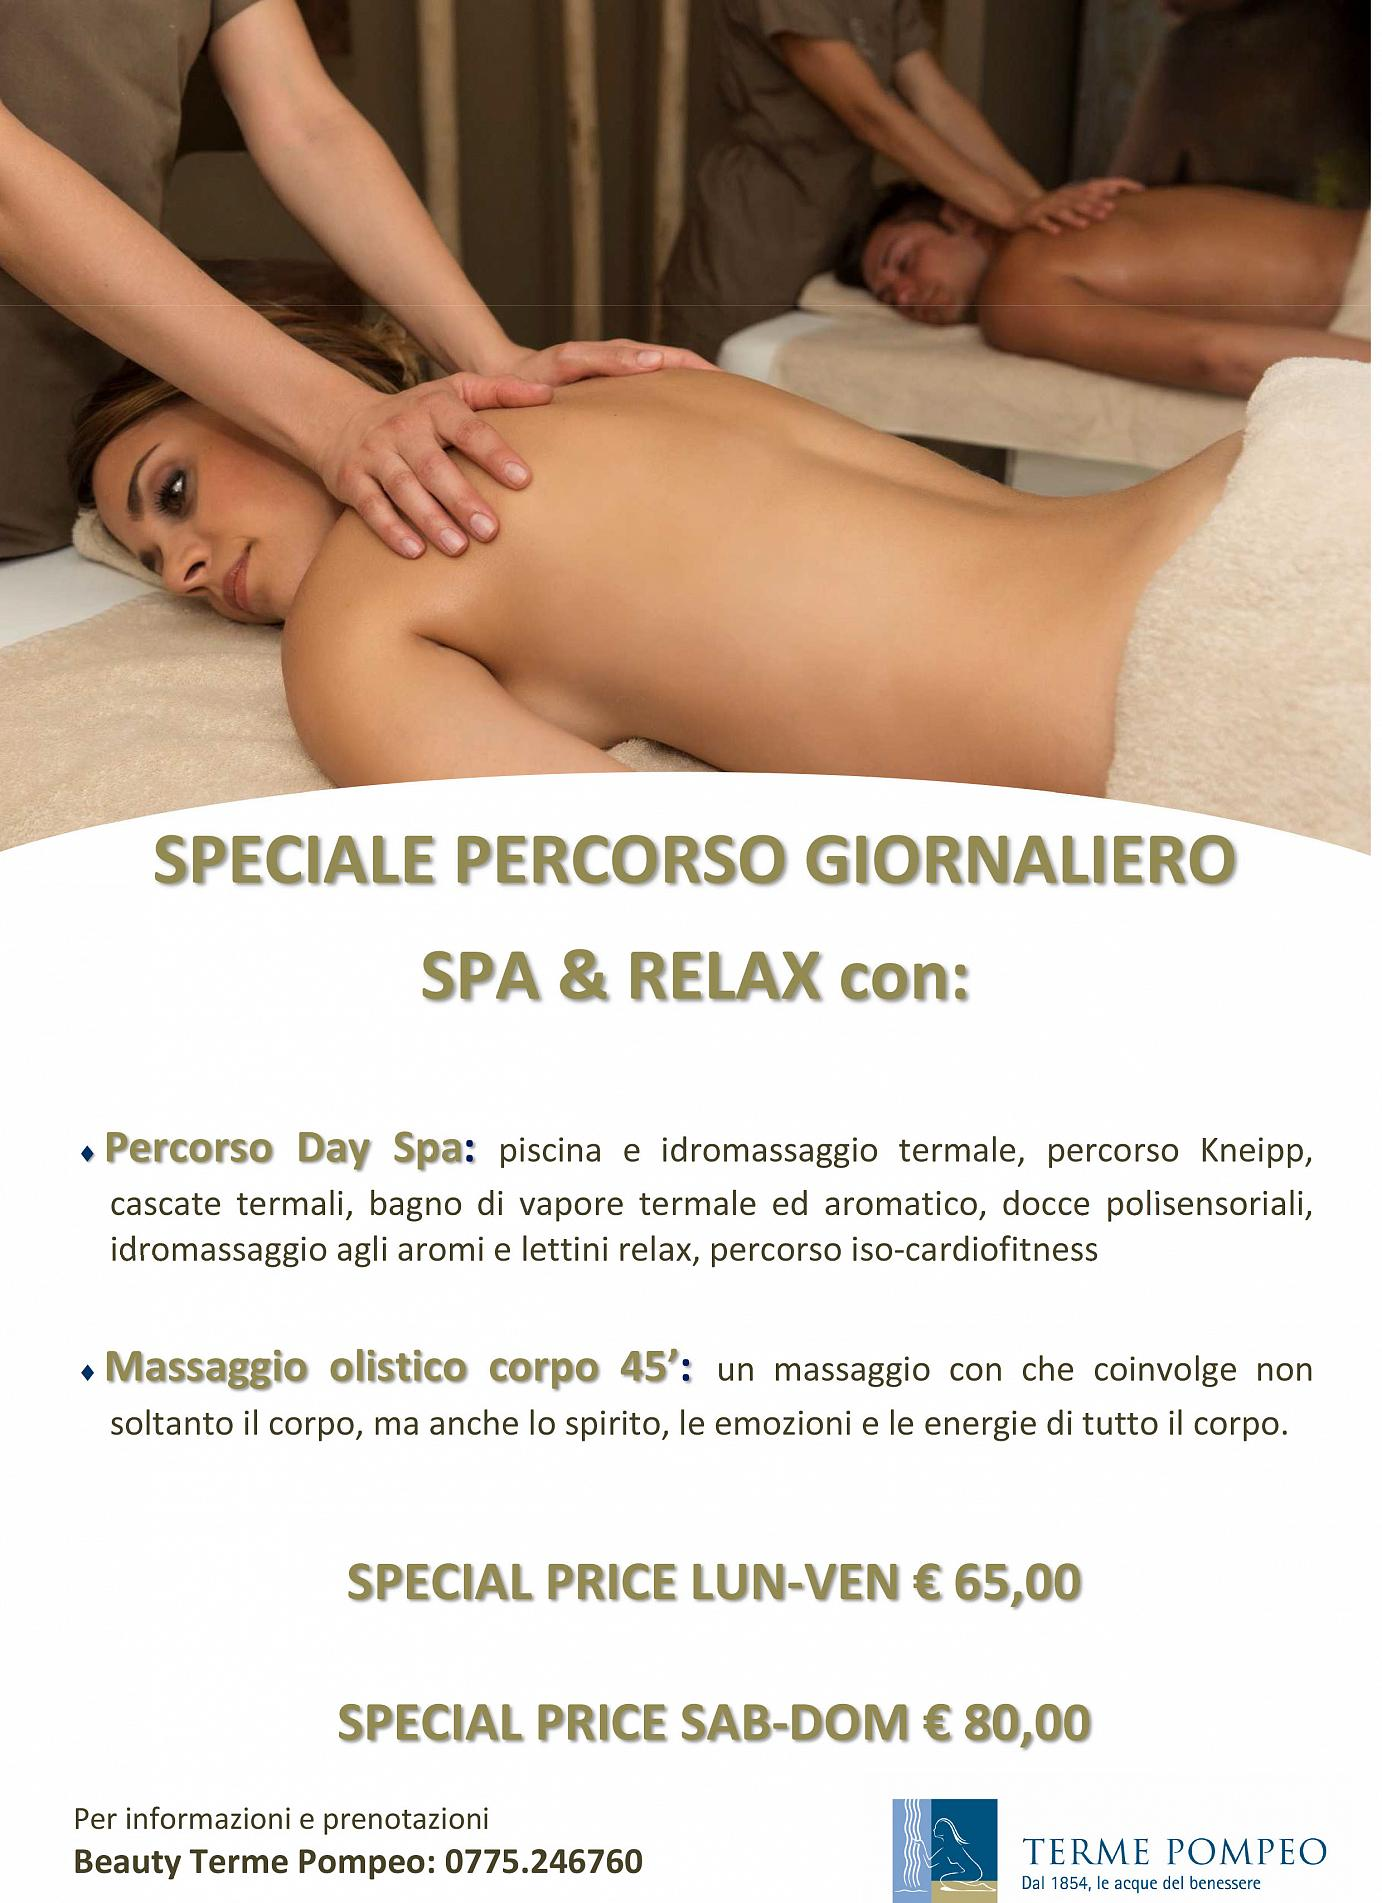 Percorso Day Spa Relax